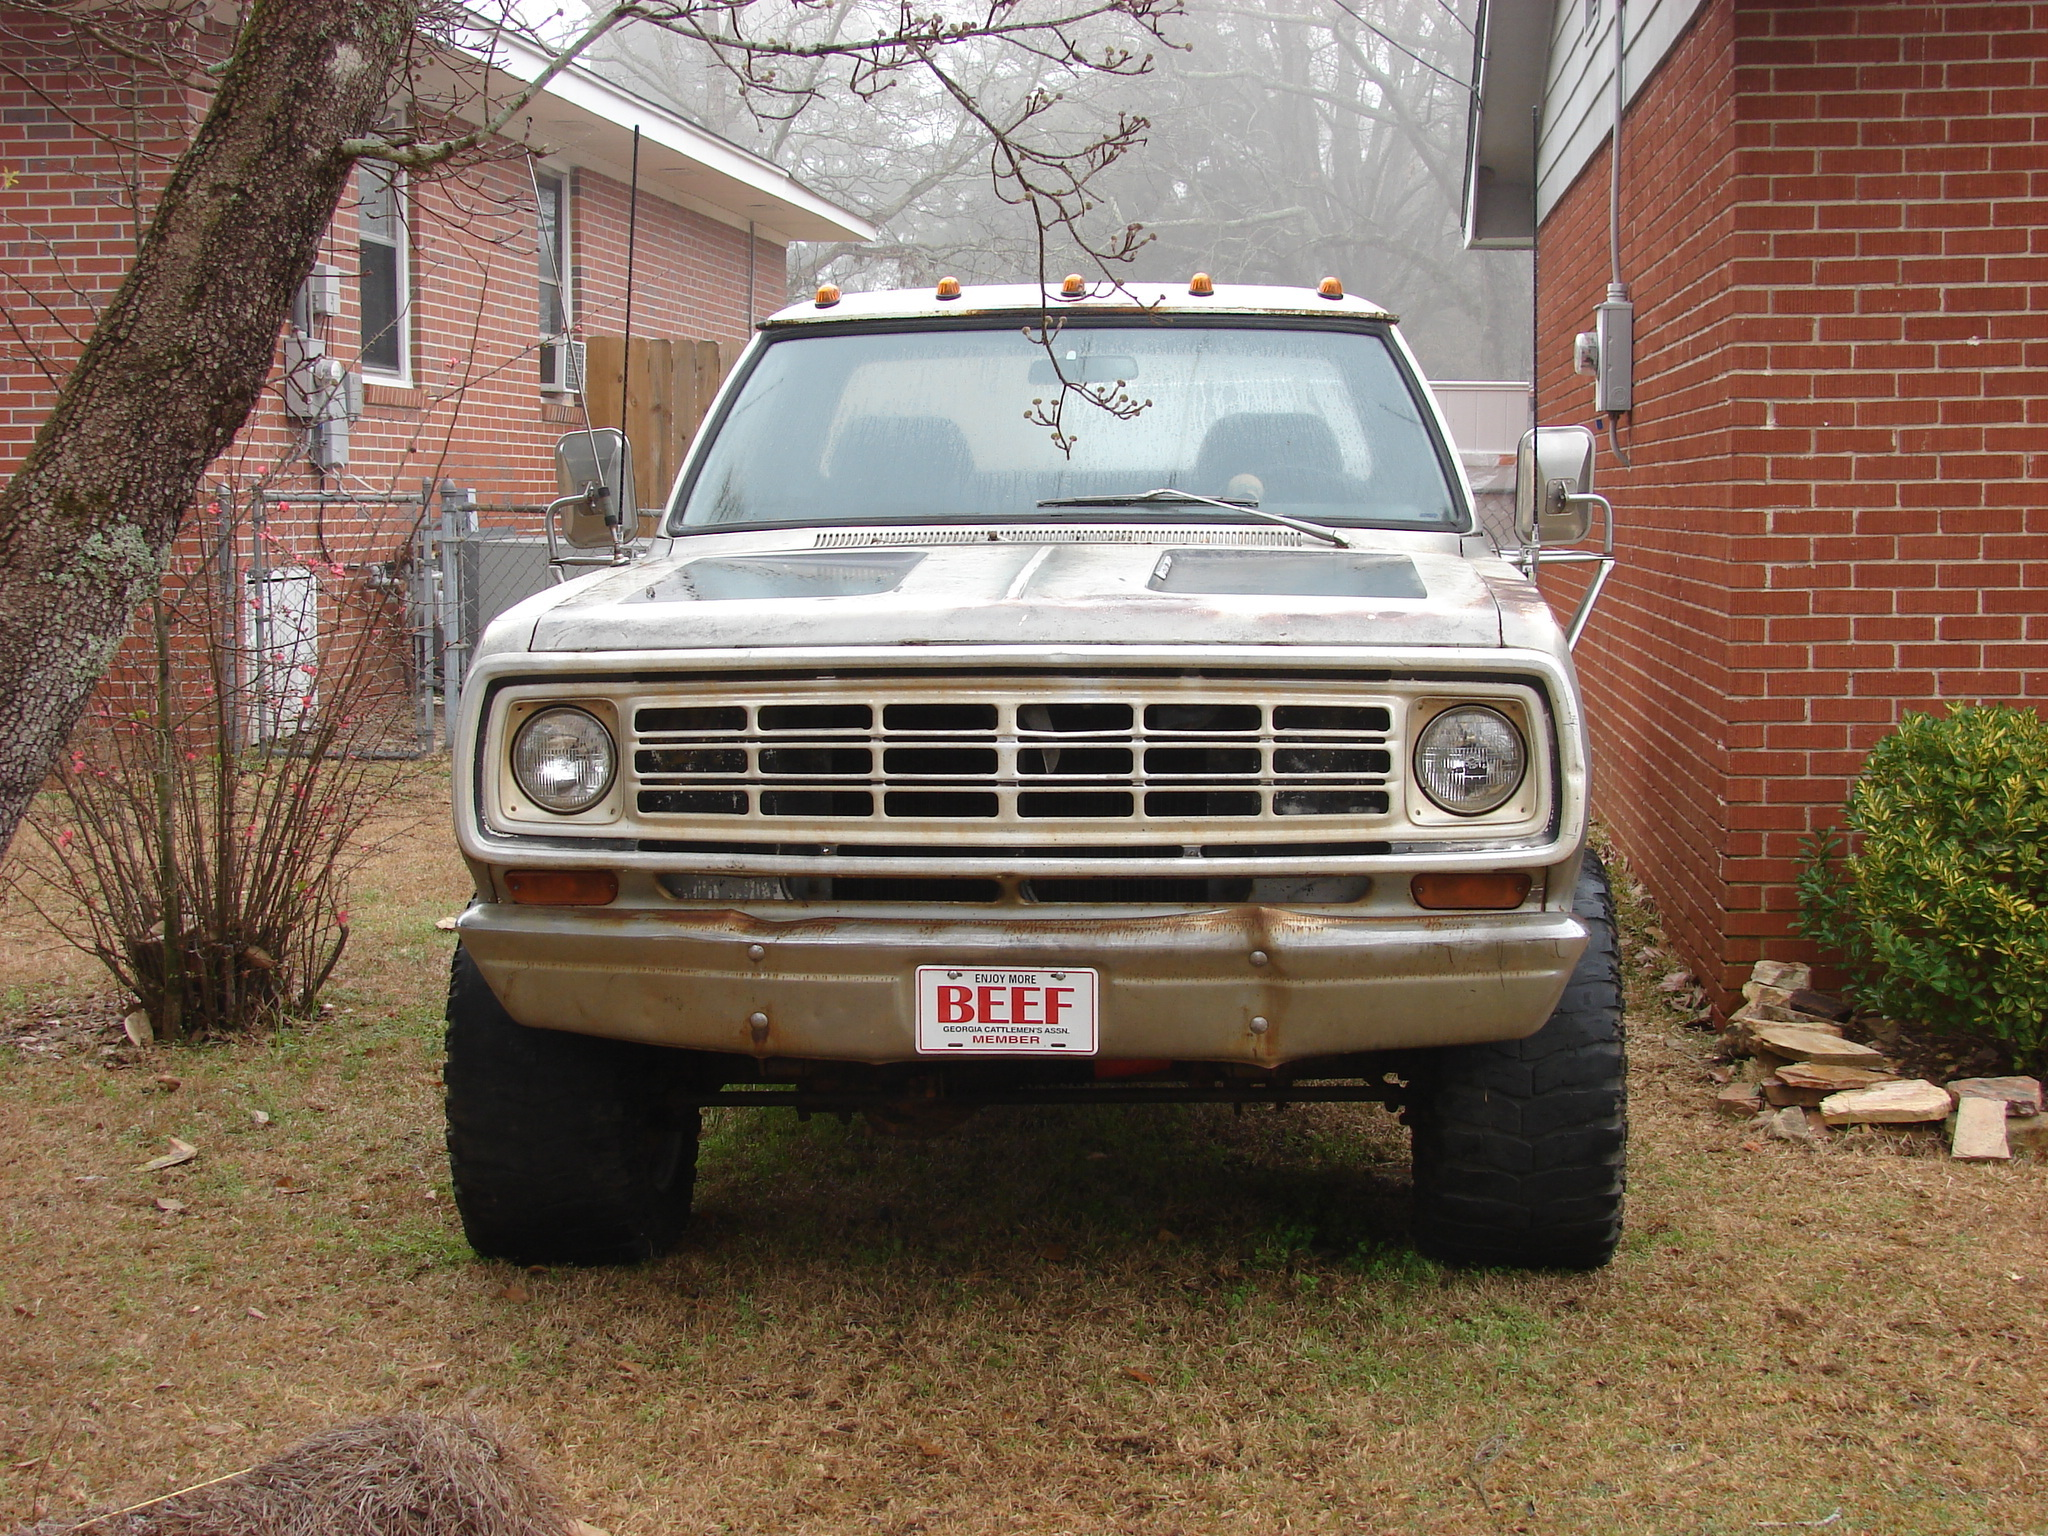 Demon_Offroad 1974 Dodge Power Wagon 12551172